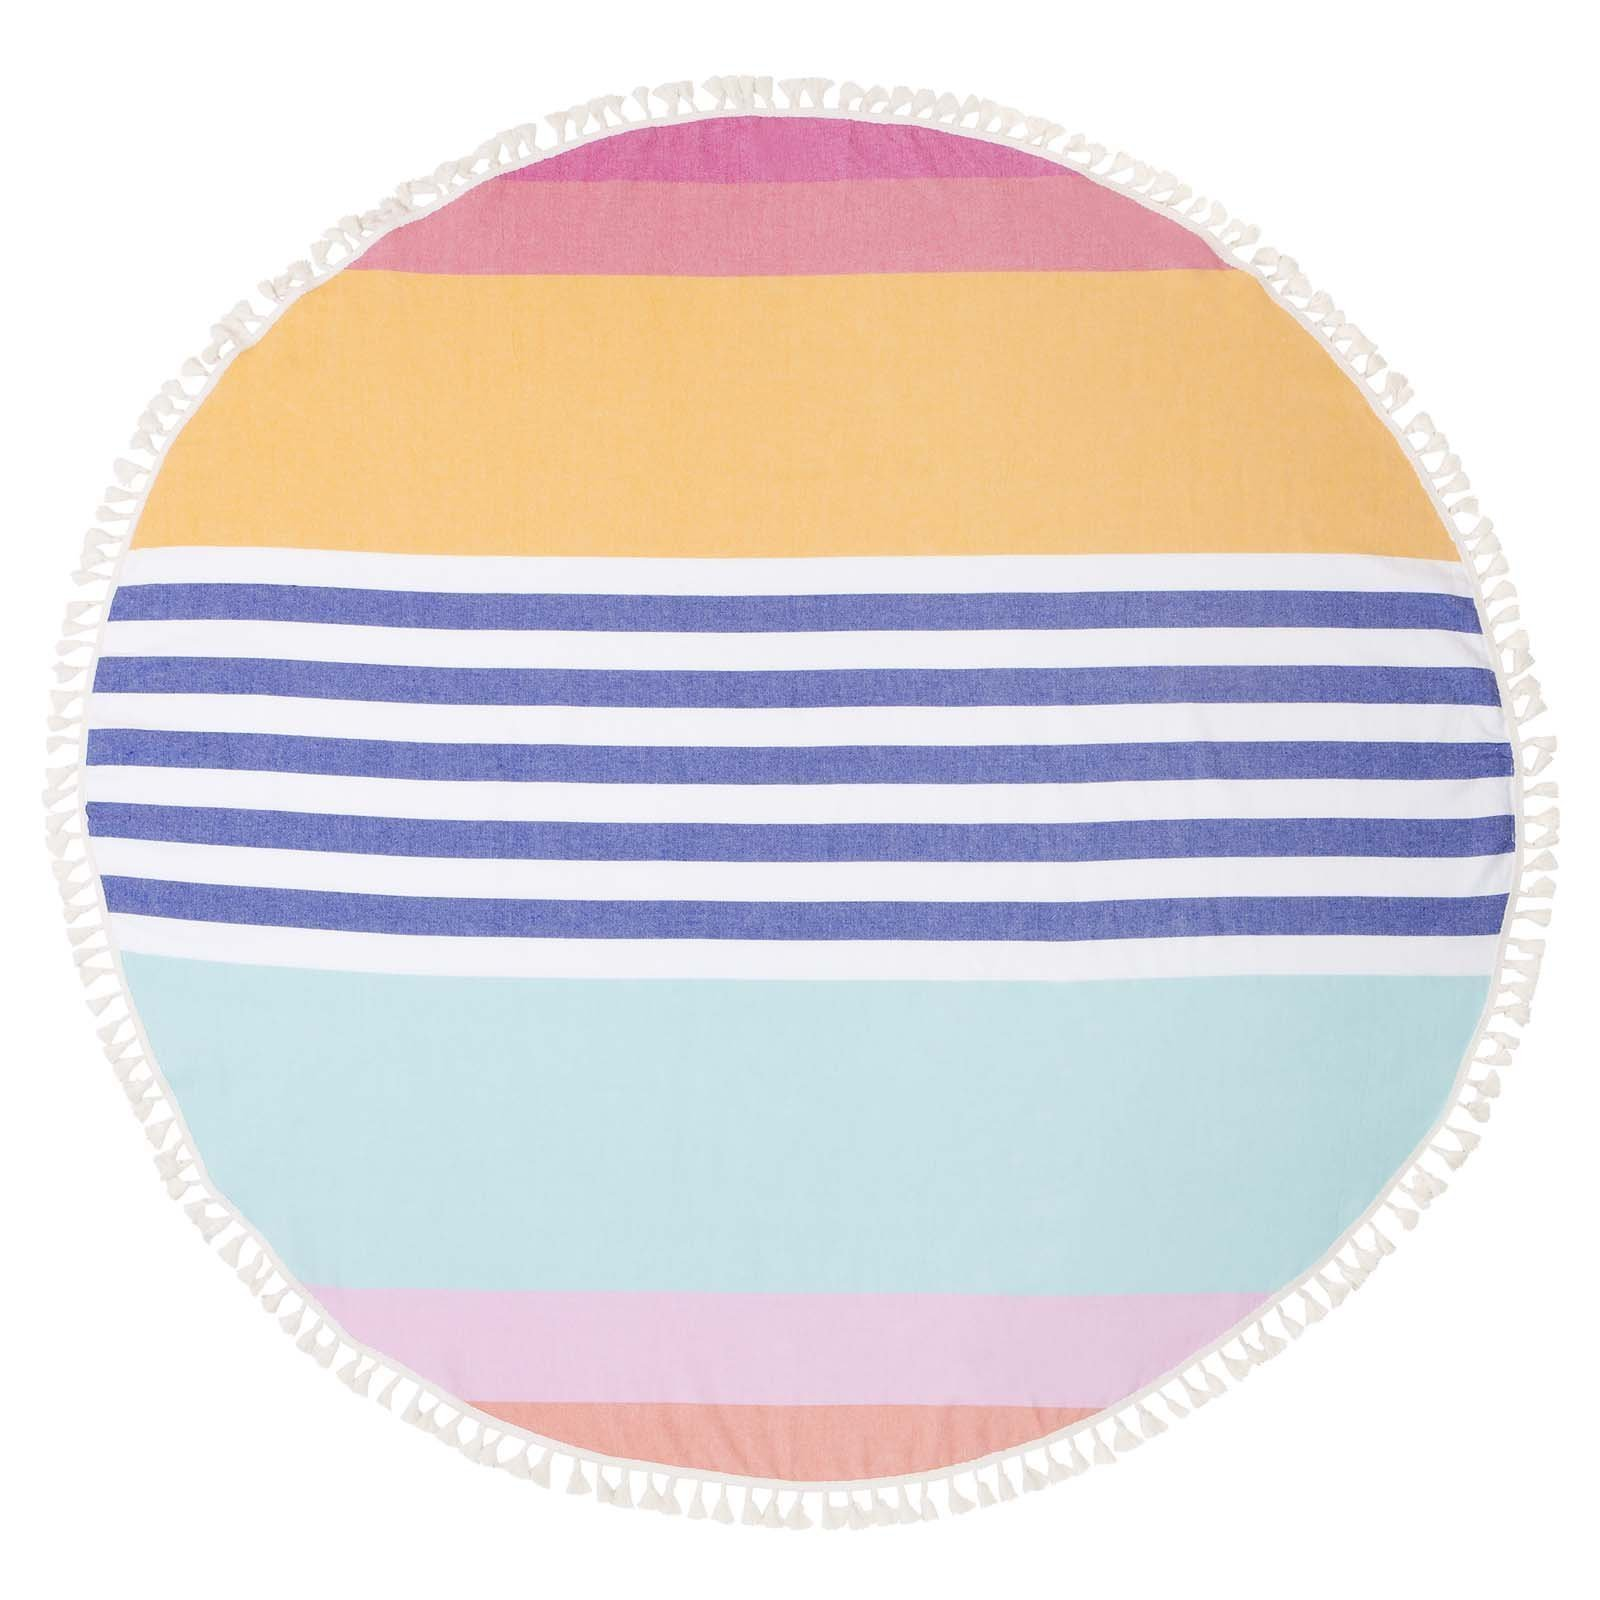 Garden Supplies Sunny 2018 Newest Printed Unicorn Round Beach Towel Microfiber Beach Towels Roundie For Adults Serviette De Plage With Traditional Methods